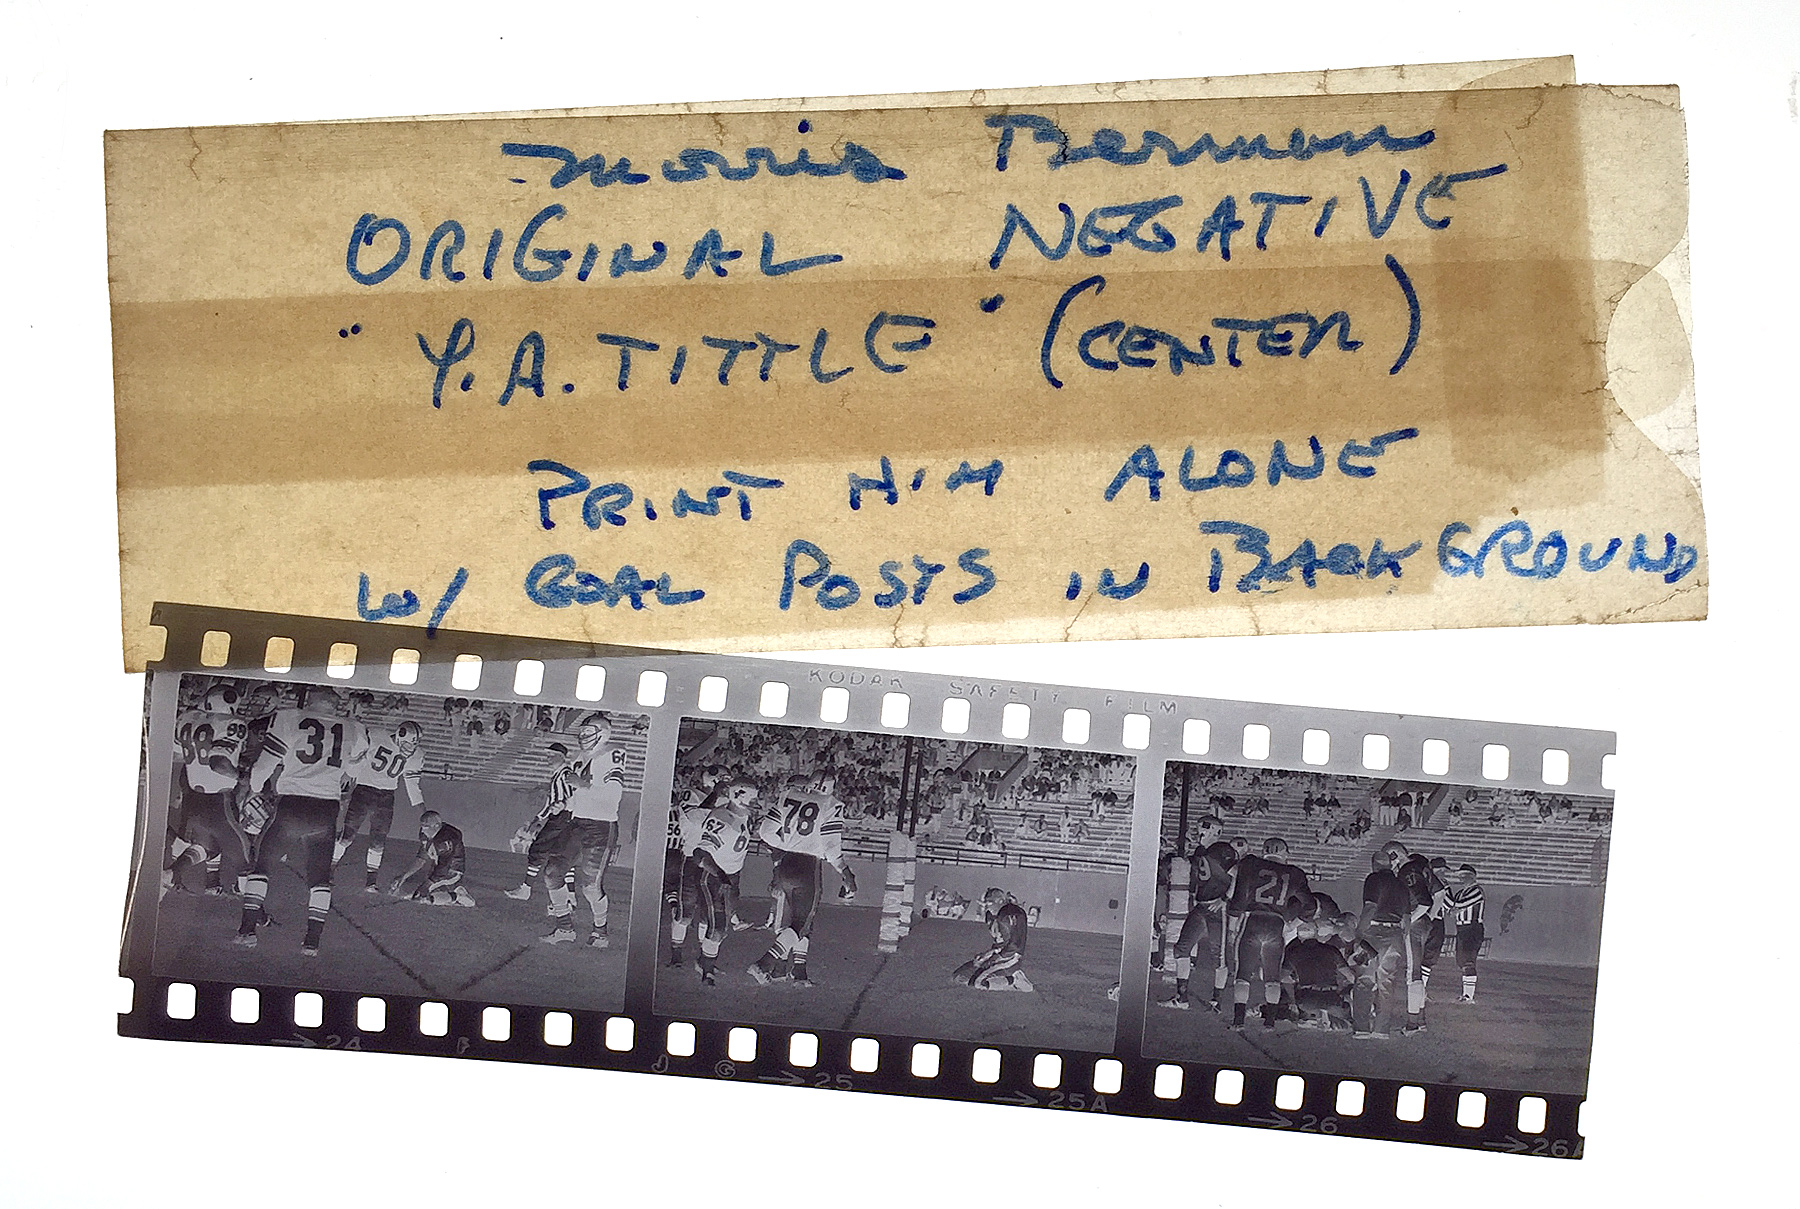 Berman's negatives were stored in a protective sleeve on which were written printing instructions. (Steve Mellon/Post-Gazette)